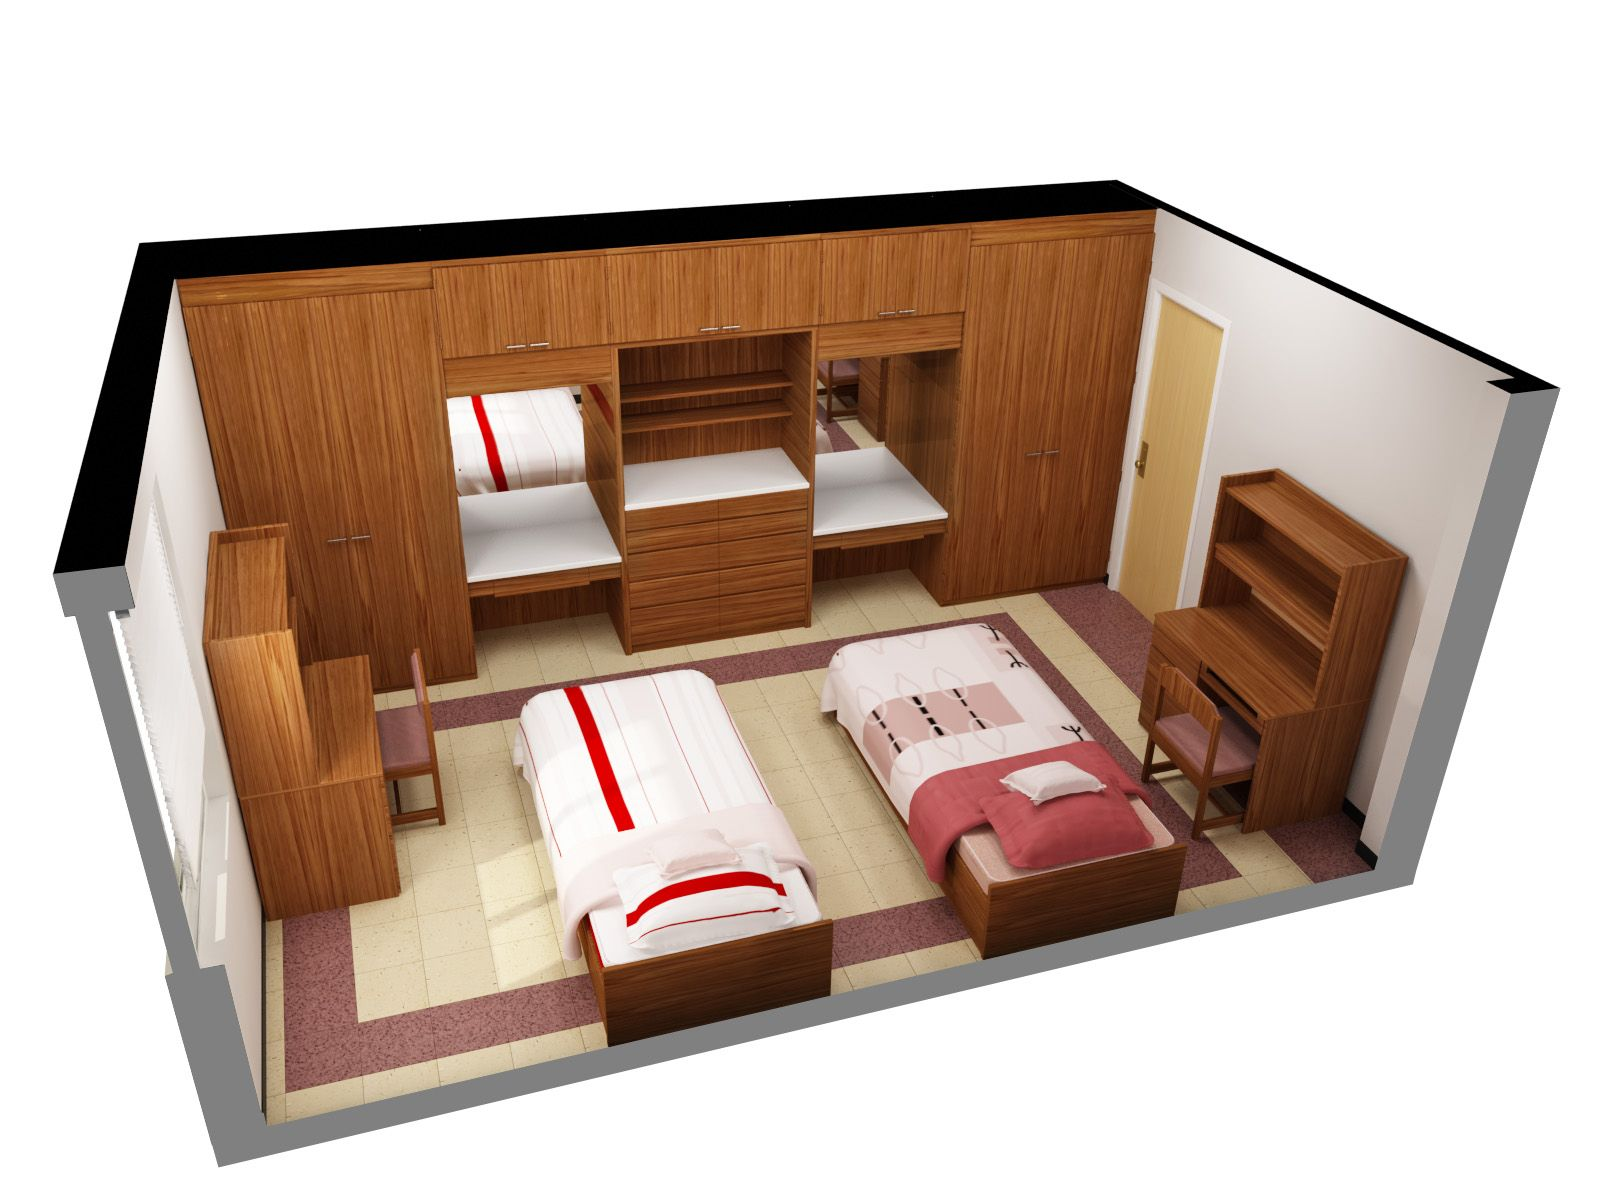 Bedroom Design Software Free Download 3D Floor Plan Software Free With Nice Double Single Bed Design For